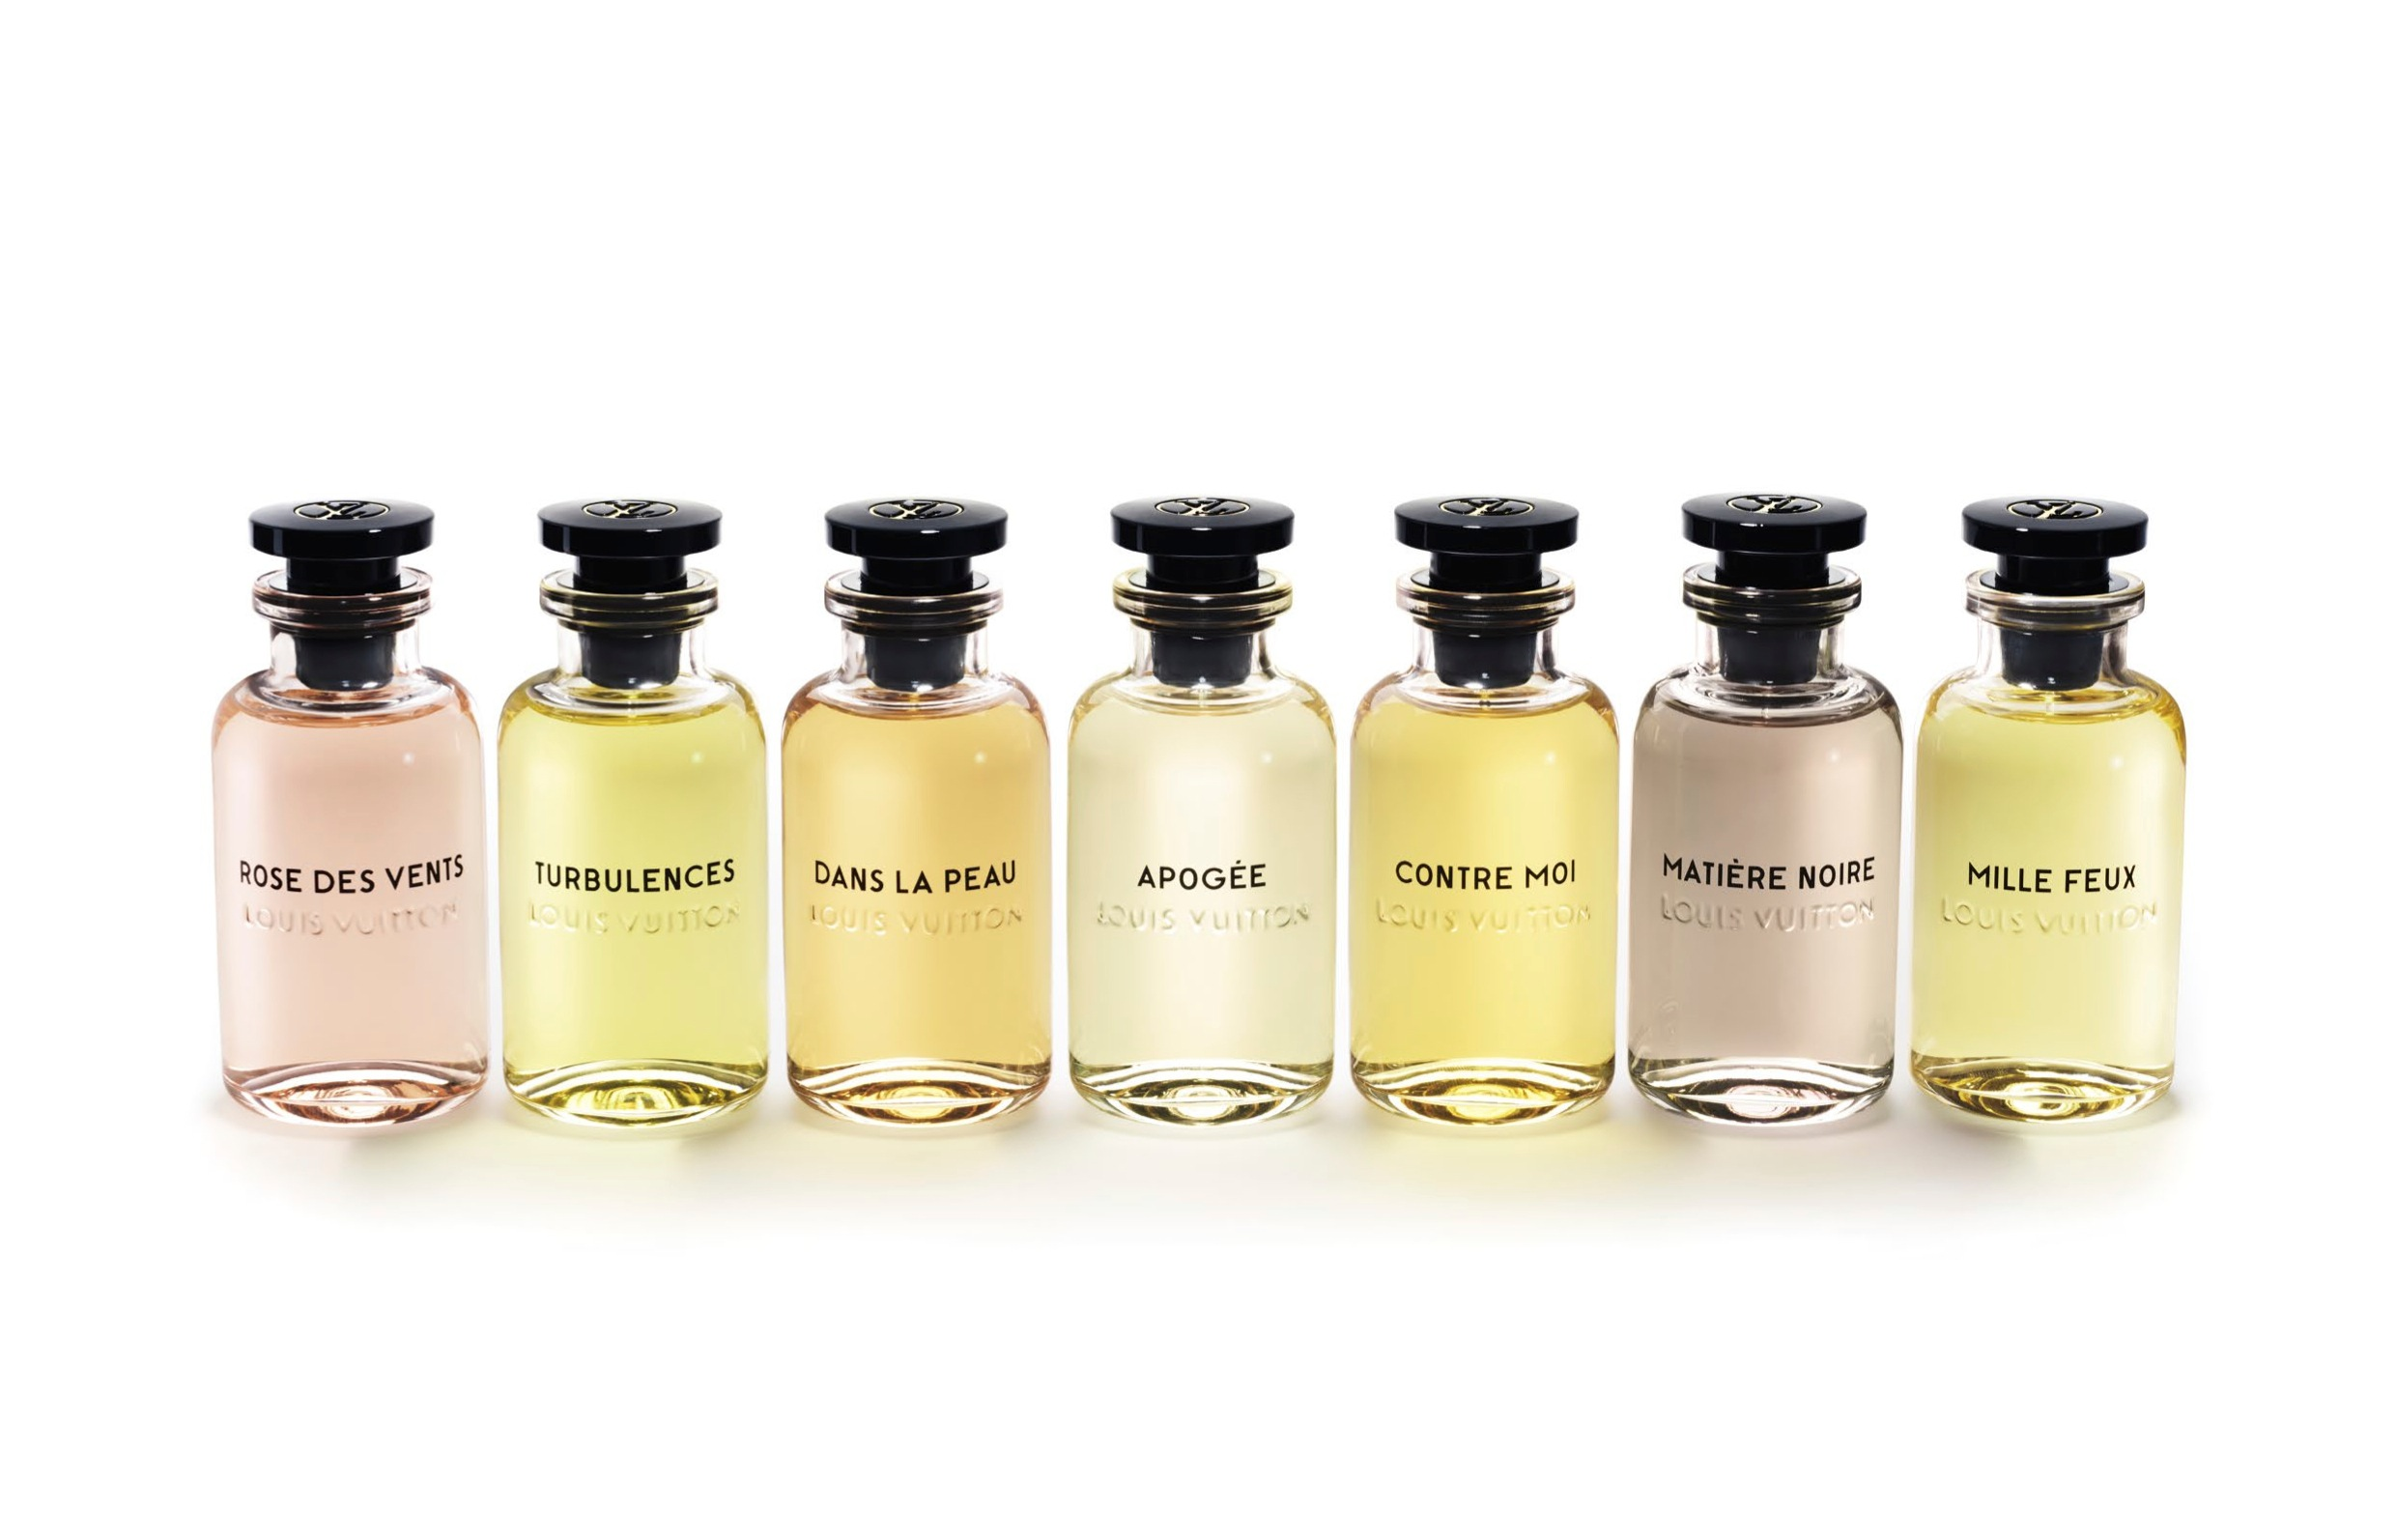 Les Parfums Louis Vuitton 1